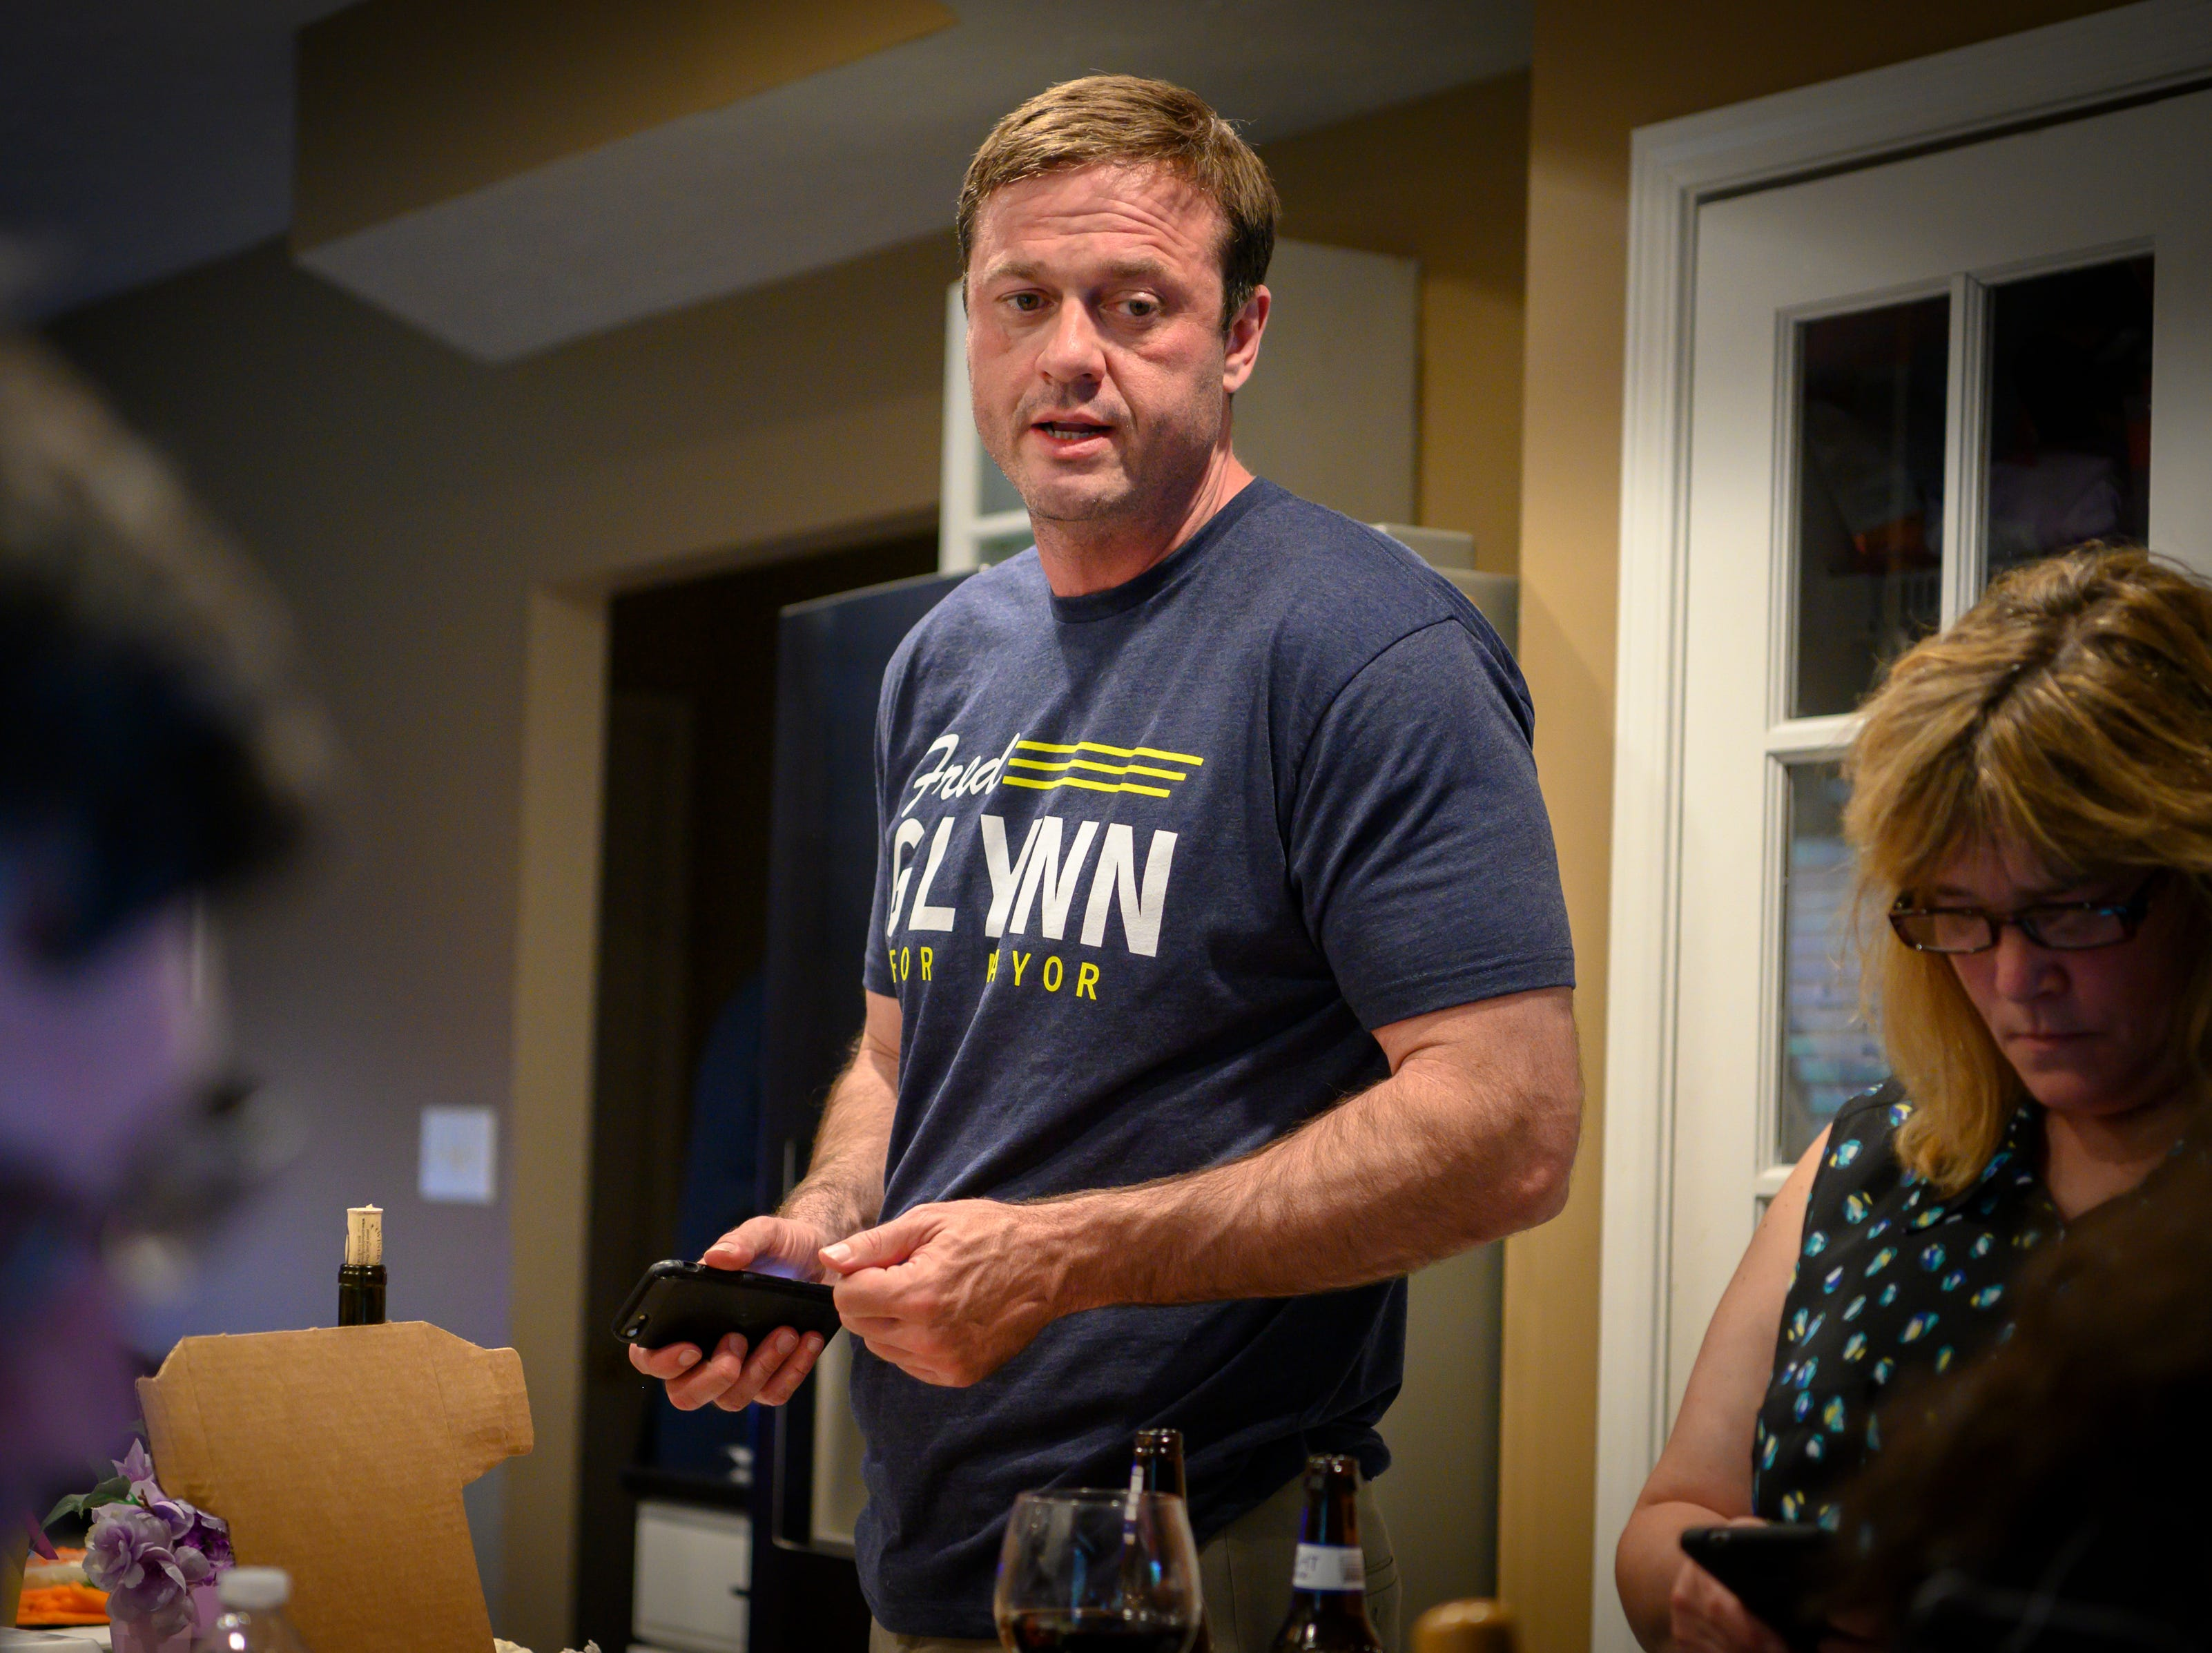 Fred Glynn talks with volunteers that are monitoring the poll results. Family, friends and supporters gathered at the home of the Carmel mayoral candidate as election results were publicized, Tuesday, May 7, 2019. Glynn campaigned for the office in hopes of unseating incumbent Jim Brainard who was seeking his seventh term in the office.